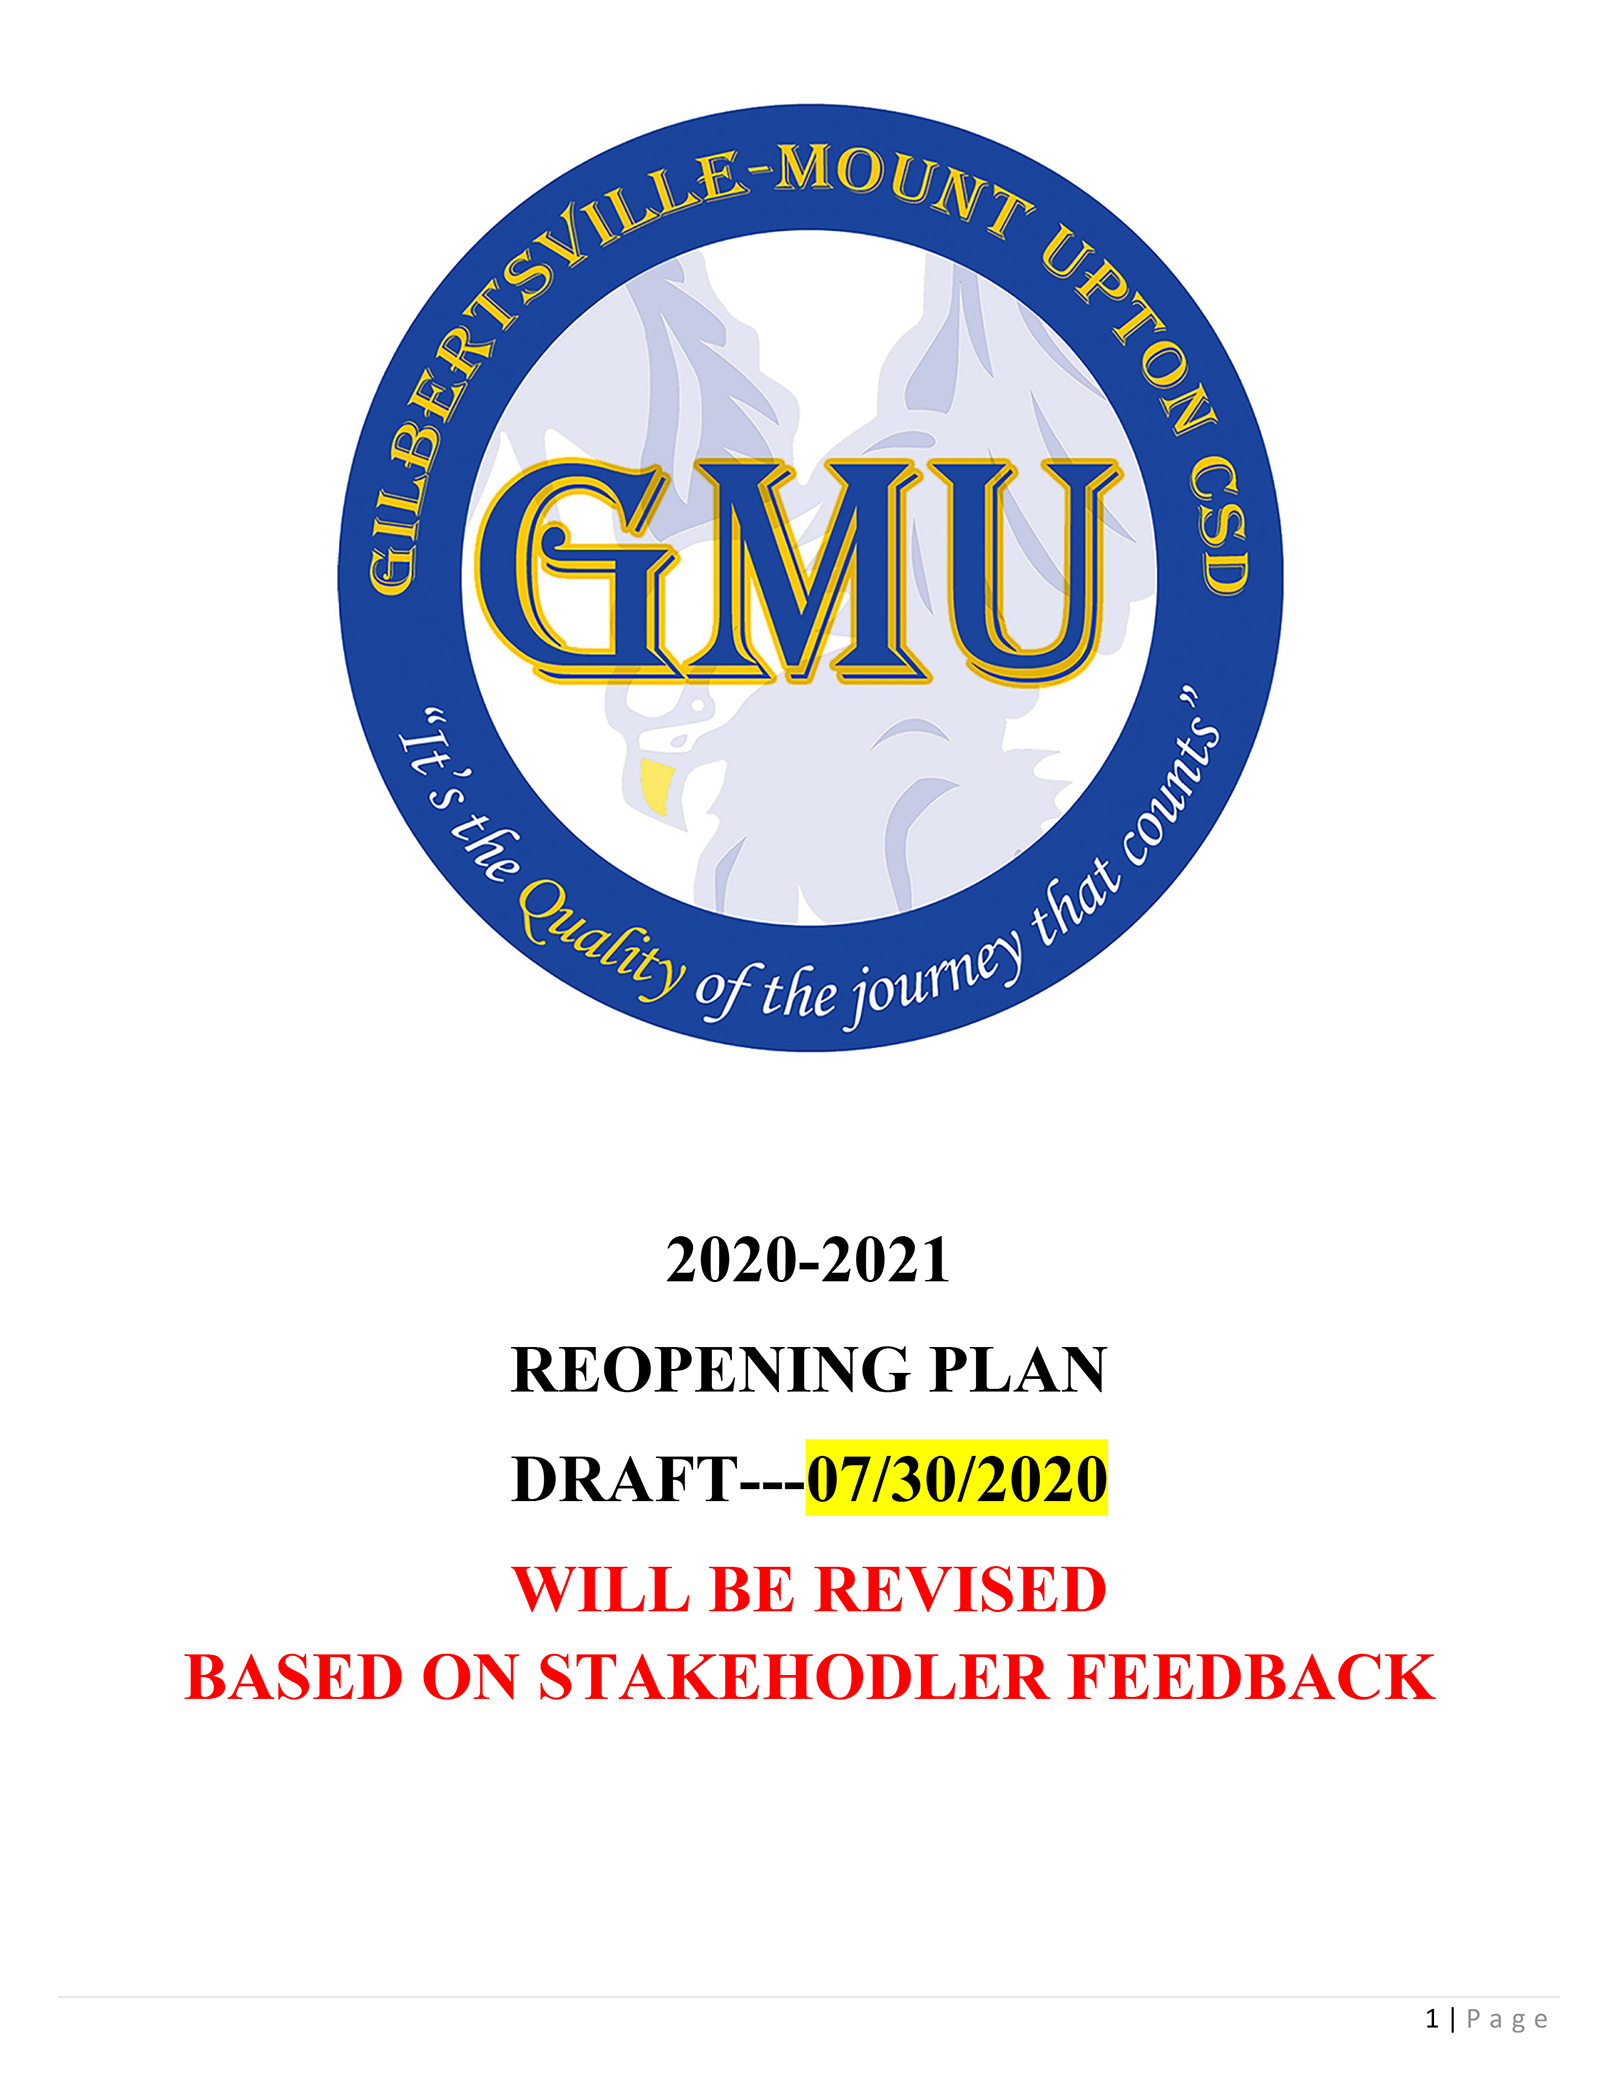 GMU Reopening Plan 2020-2021 Cover Pic (7/30/2020)